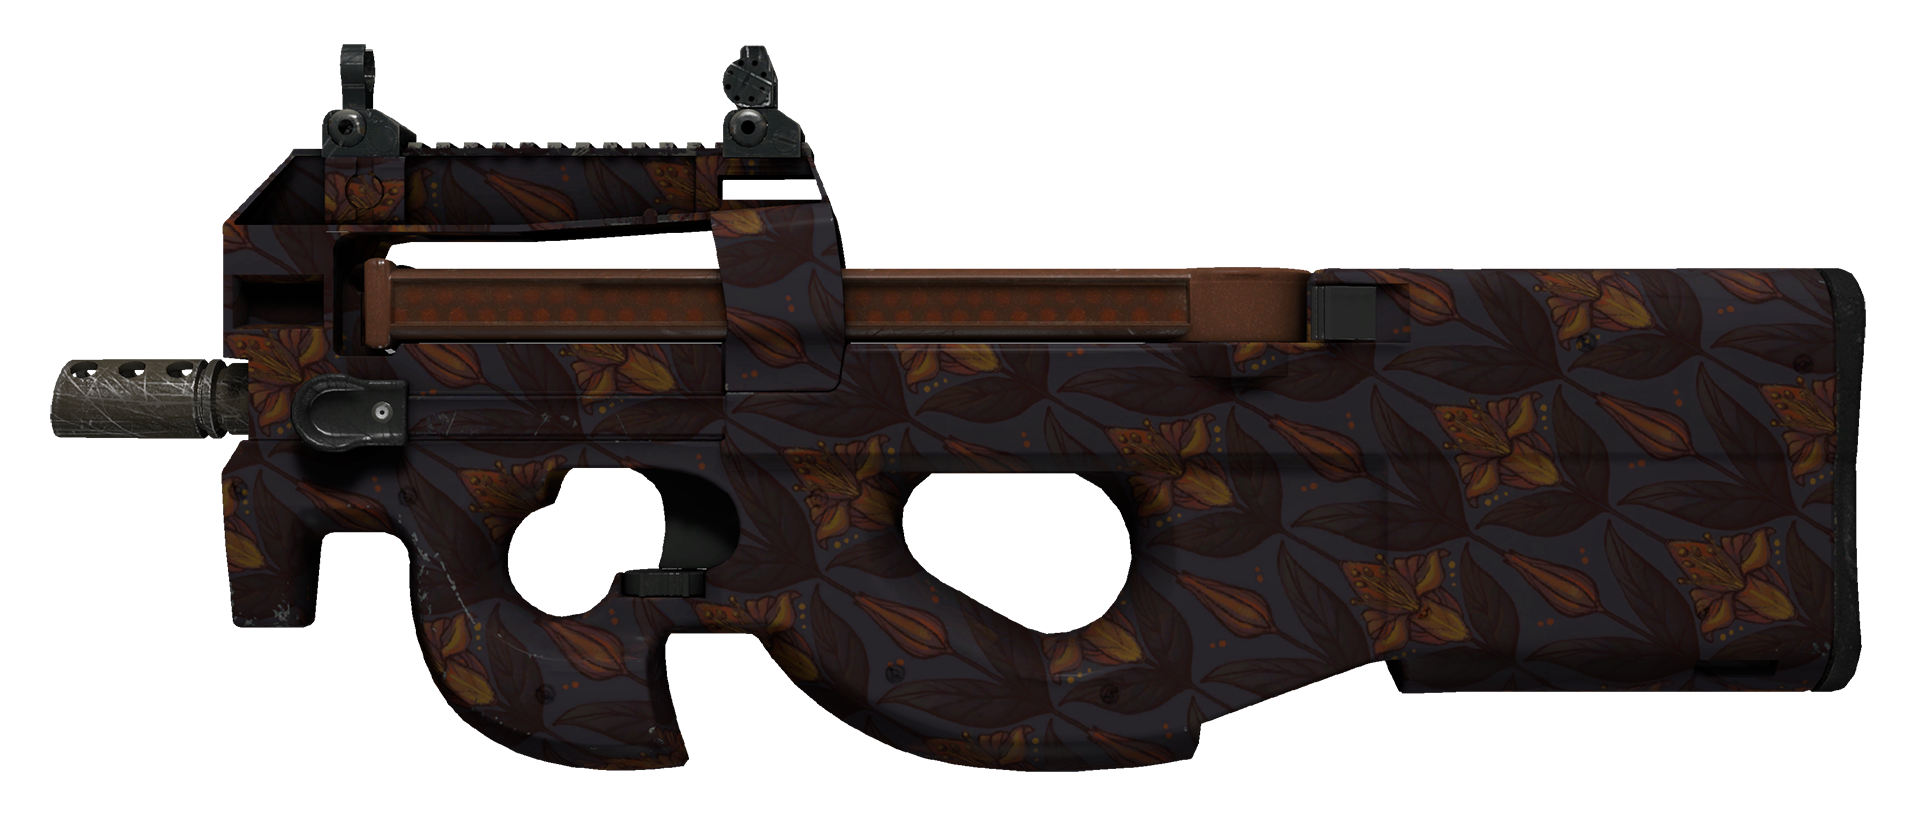 P90 Sunset Lily Large Rendering